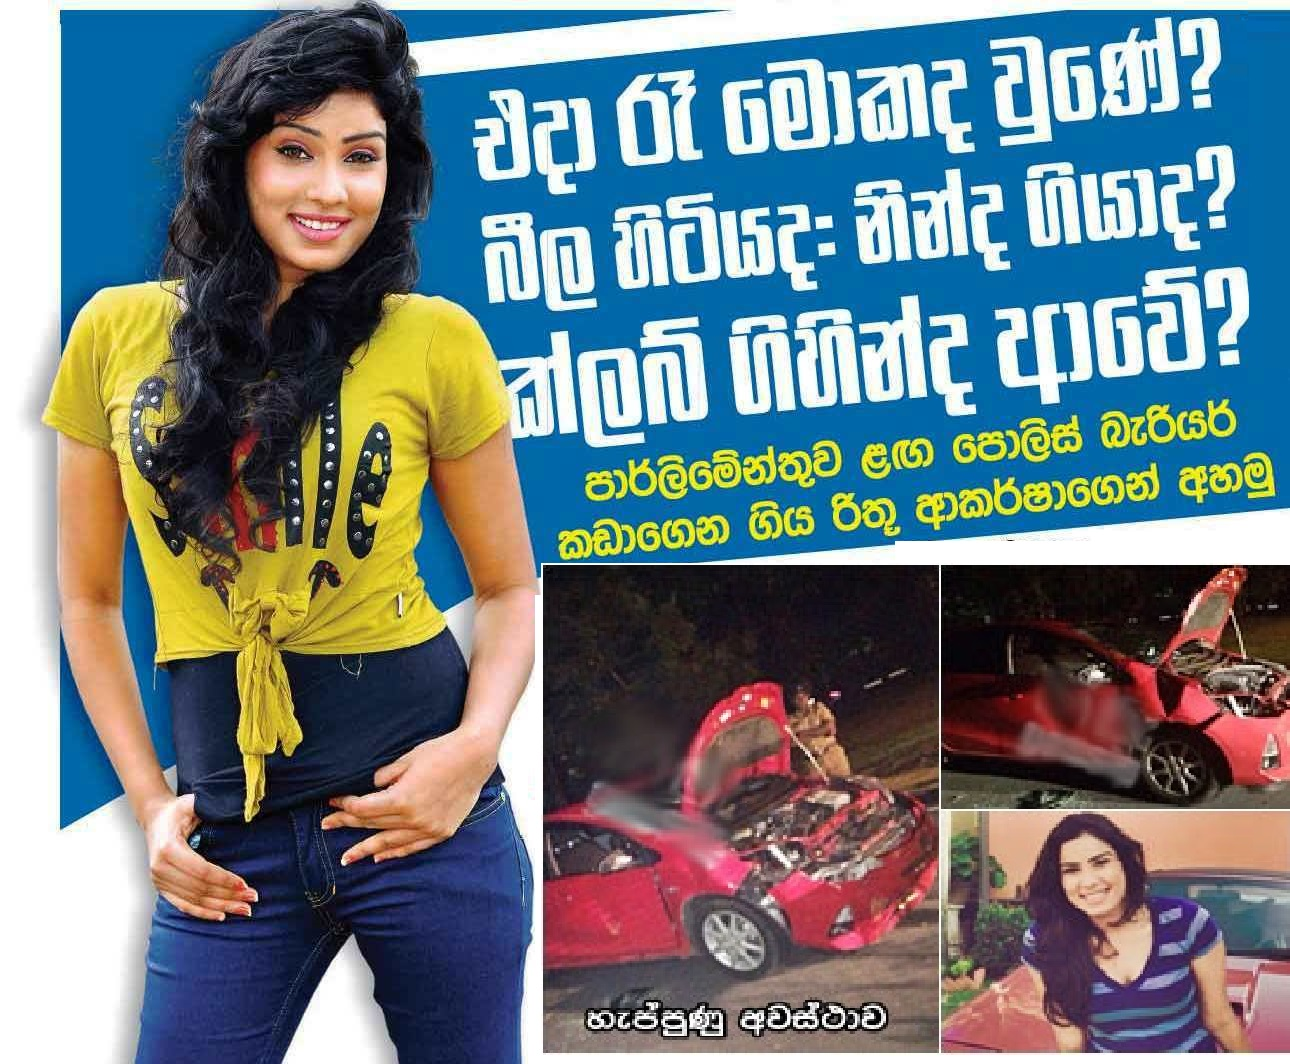 Rithu Akarsha Speaks about Parliament Road Accident